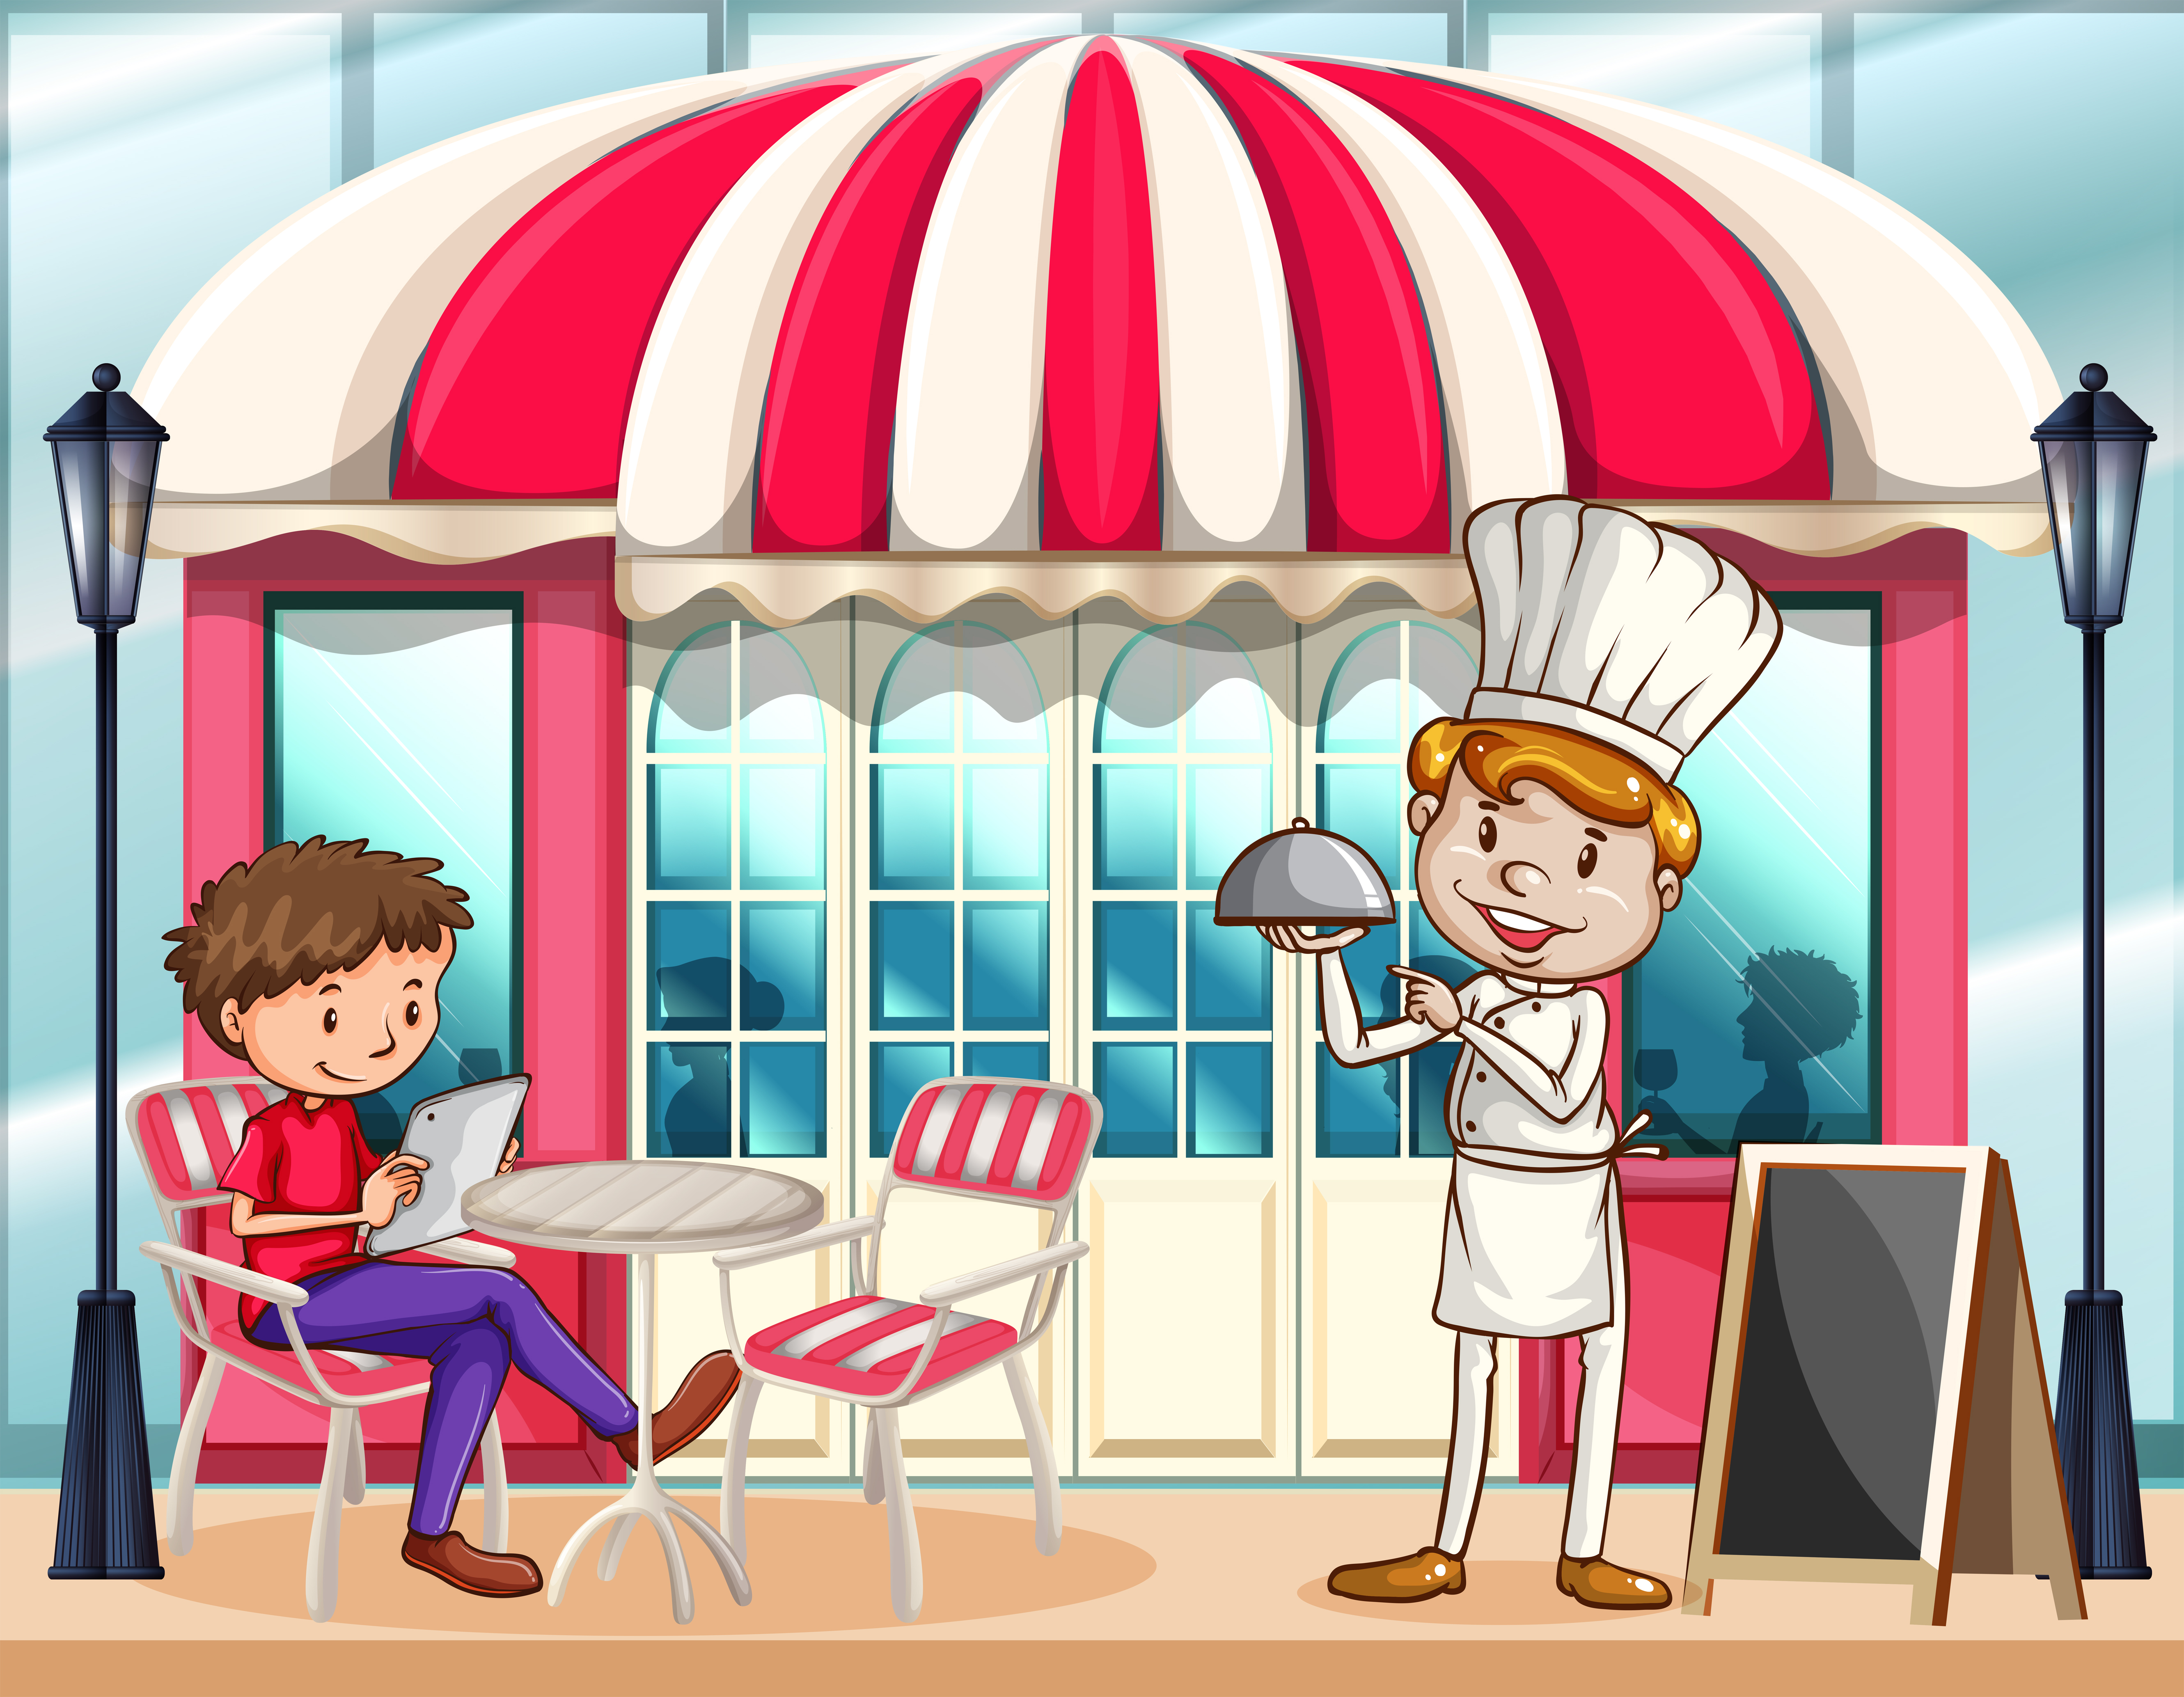 Cafe scene with chef and customer - Download Free Vectors ...